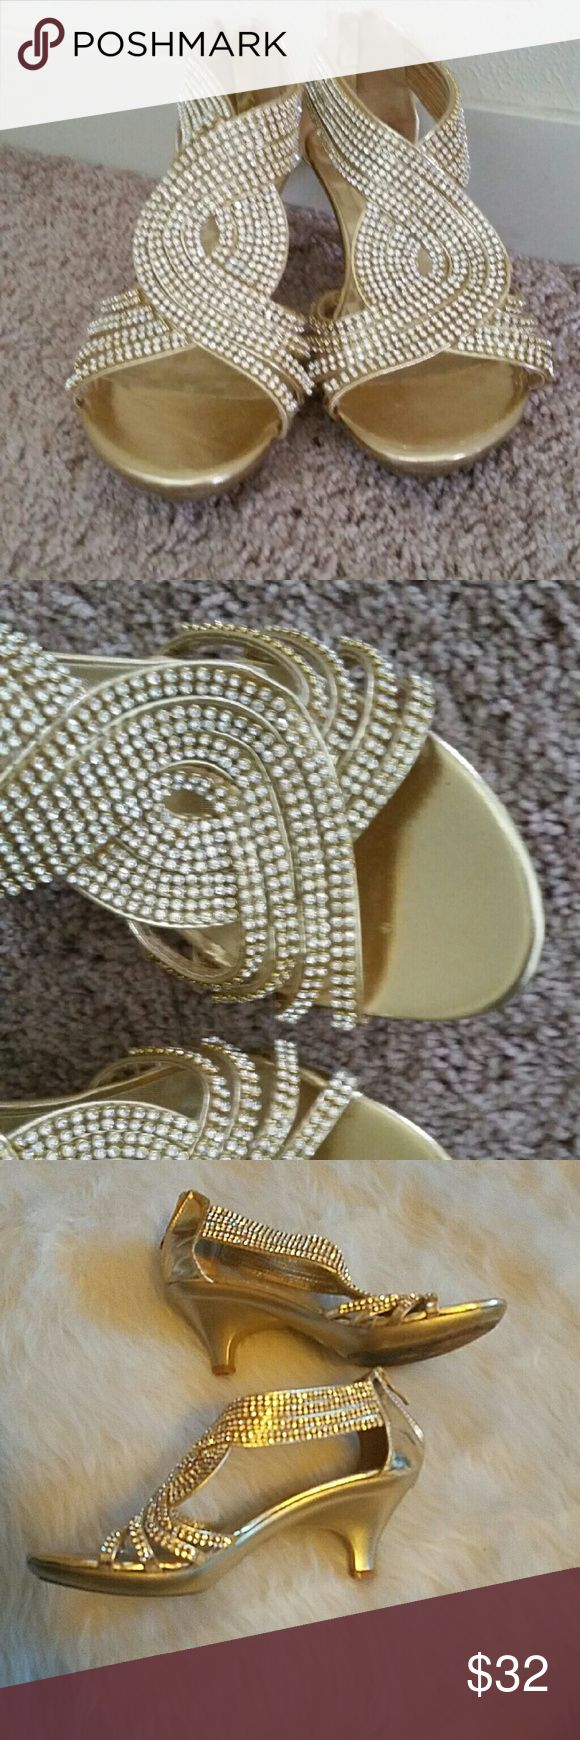 Stunning gold rhinestone heels Gold heels covered in rhinestones, No missing stones, EUC!! Shoes